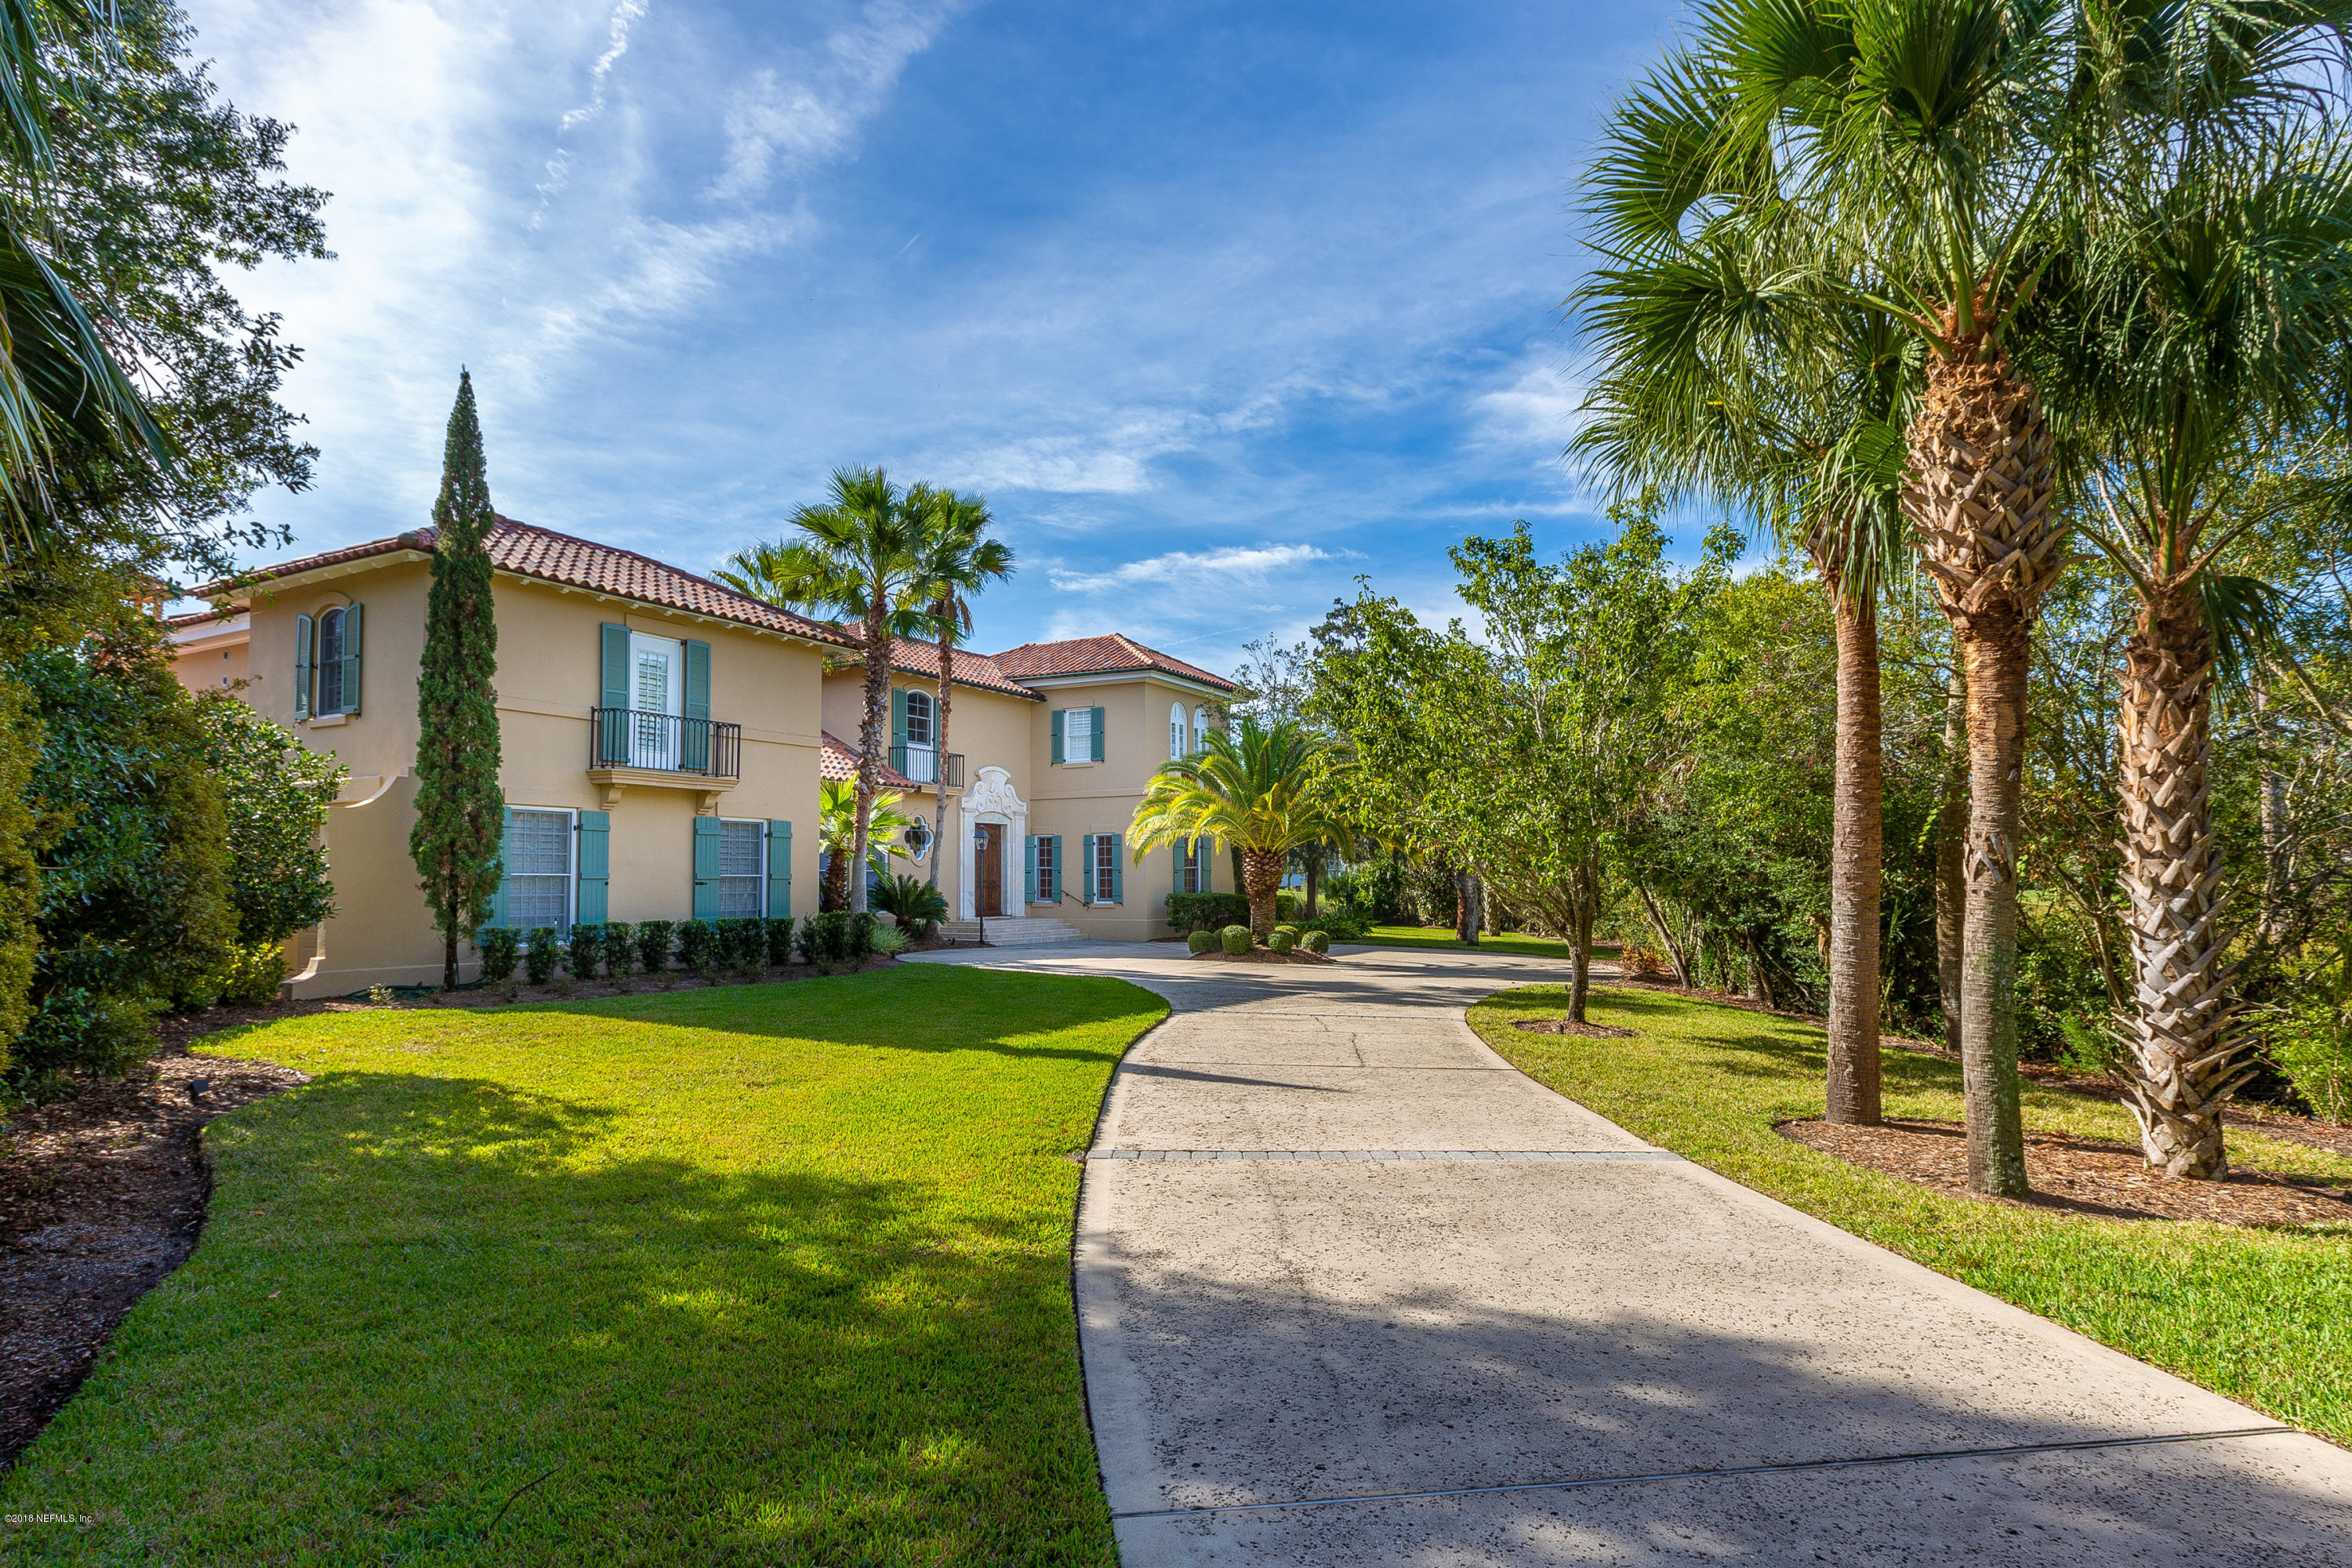 105 PALM FOREST, PONTE VEDRA BEACH, FLORIDA 32082, 4 Bedrooms Bedrooms, ,5 BathroomsBathrooms,Residential - single family,For sale,PALM FOREST,966154